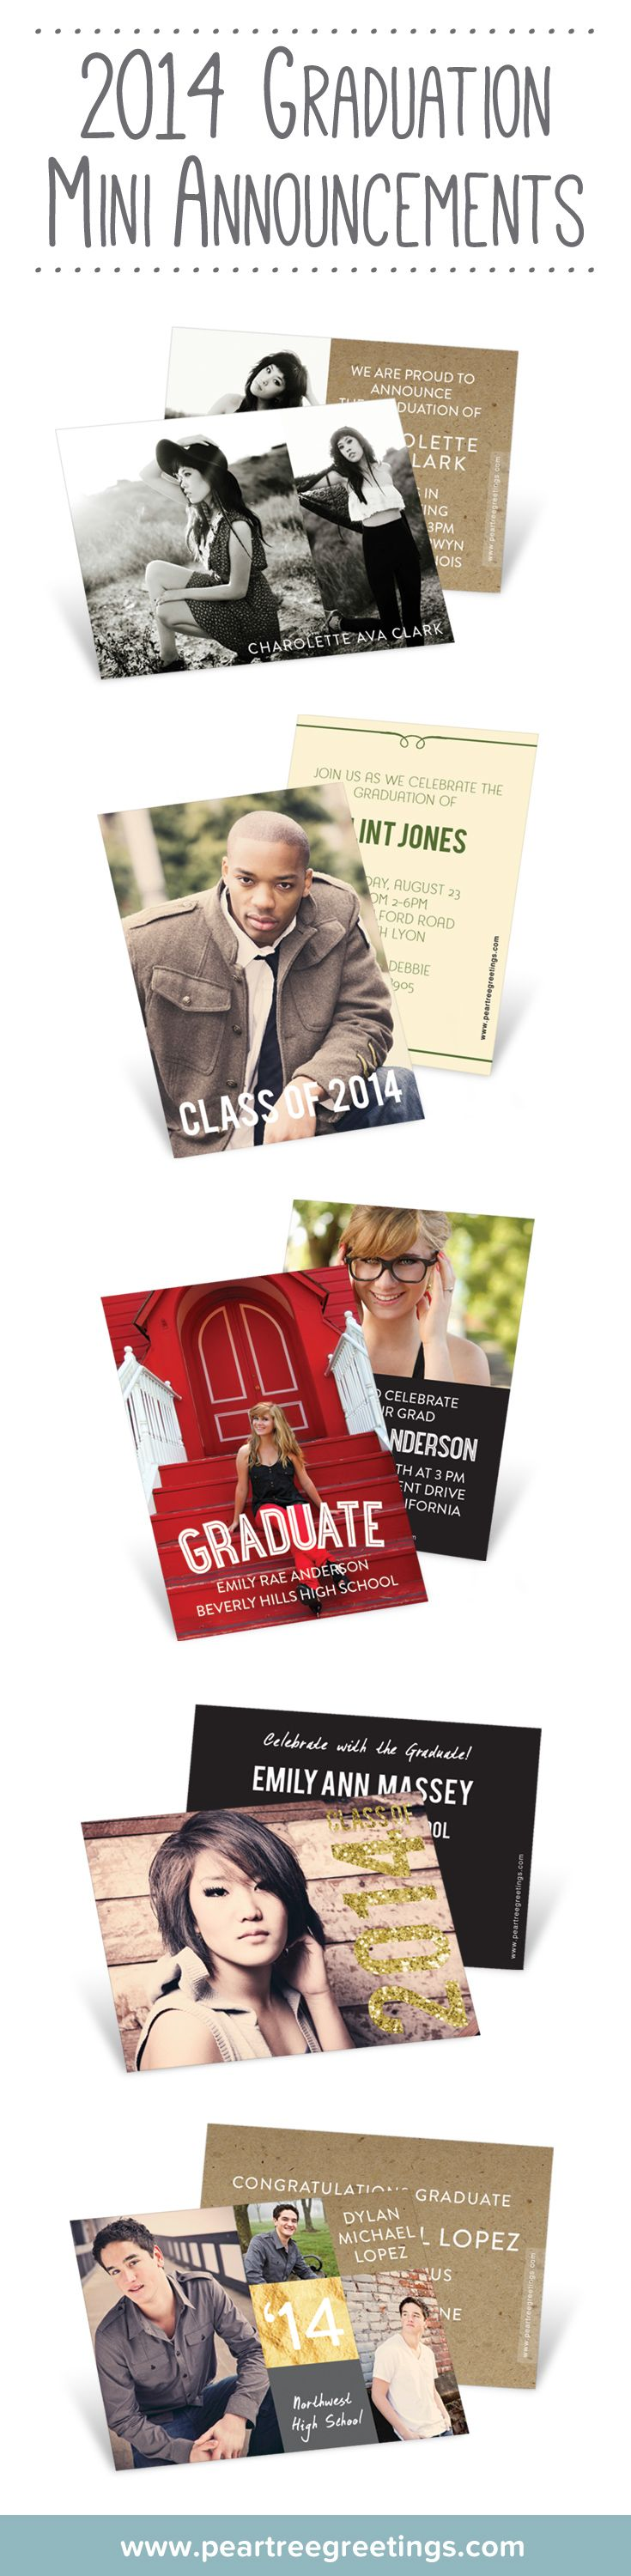 These pocket-size mini graduation announcements are perfect for handing out grad party details to friends at school!